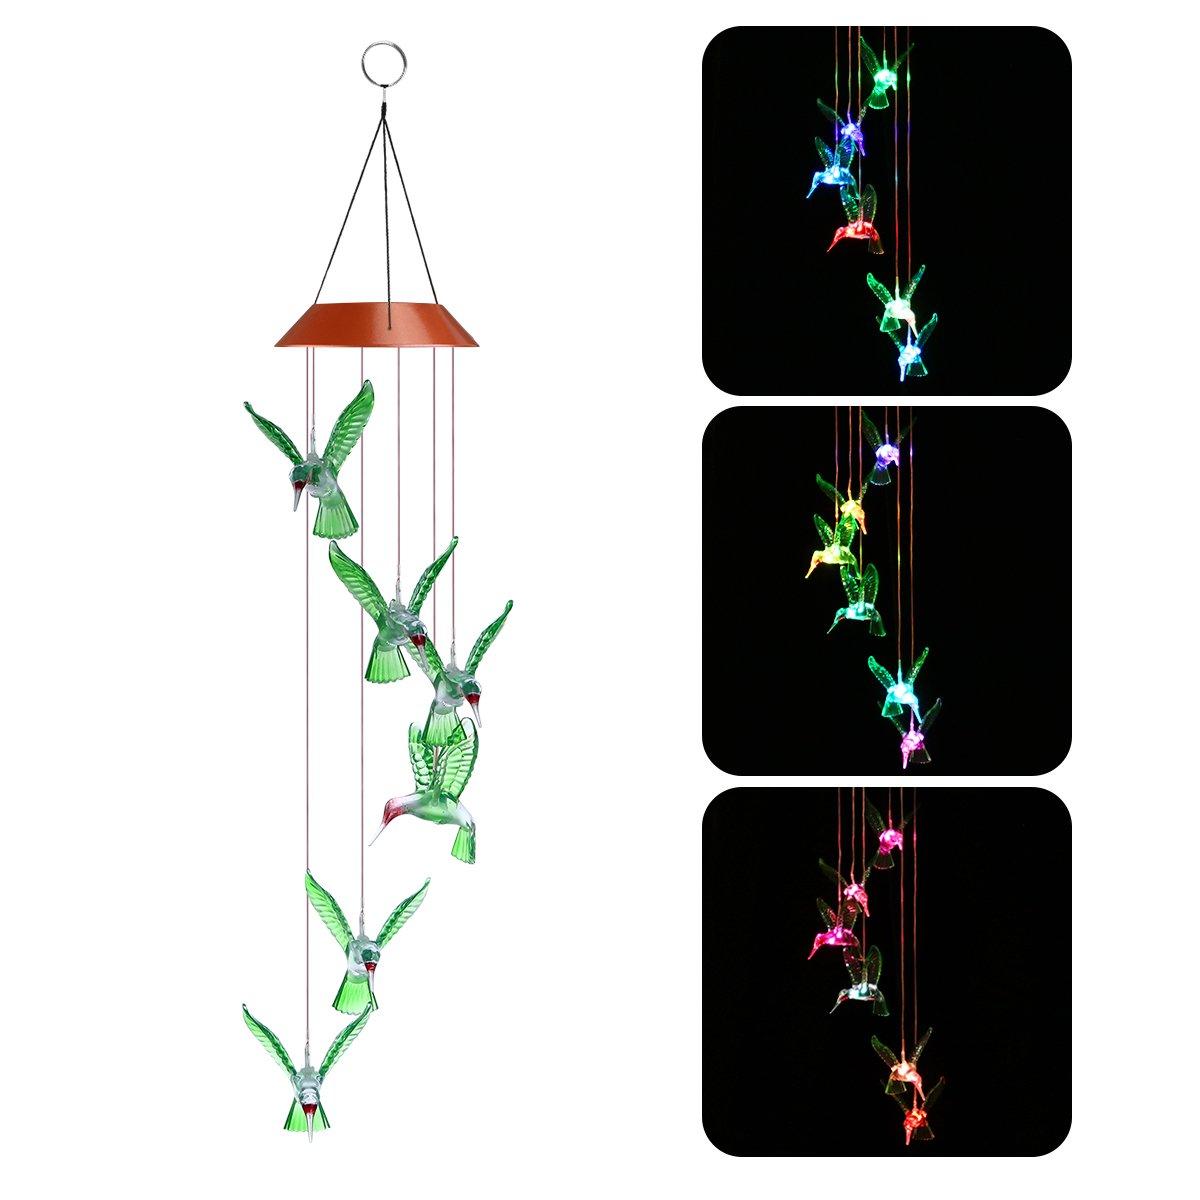 LED Solar Wind Chimes, Changing Color Hummingbird Lamp Automatic Sensor Garden Spinner Outdoor Lights for Home Party Decorations YUNLIGHTS